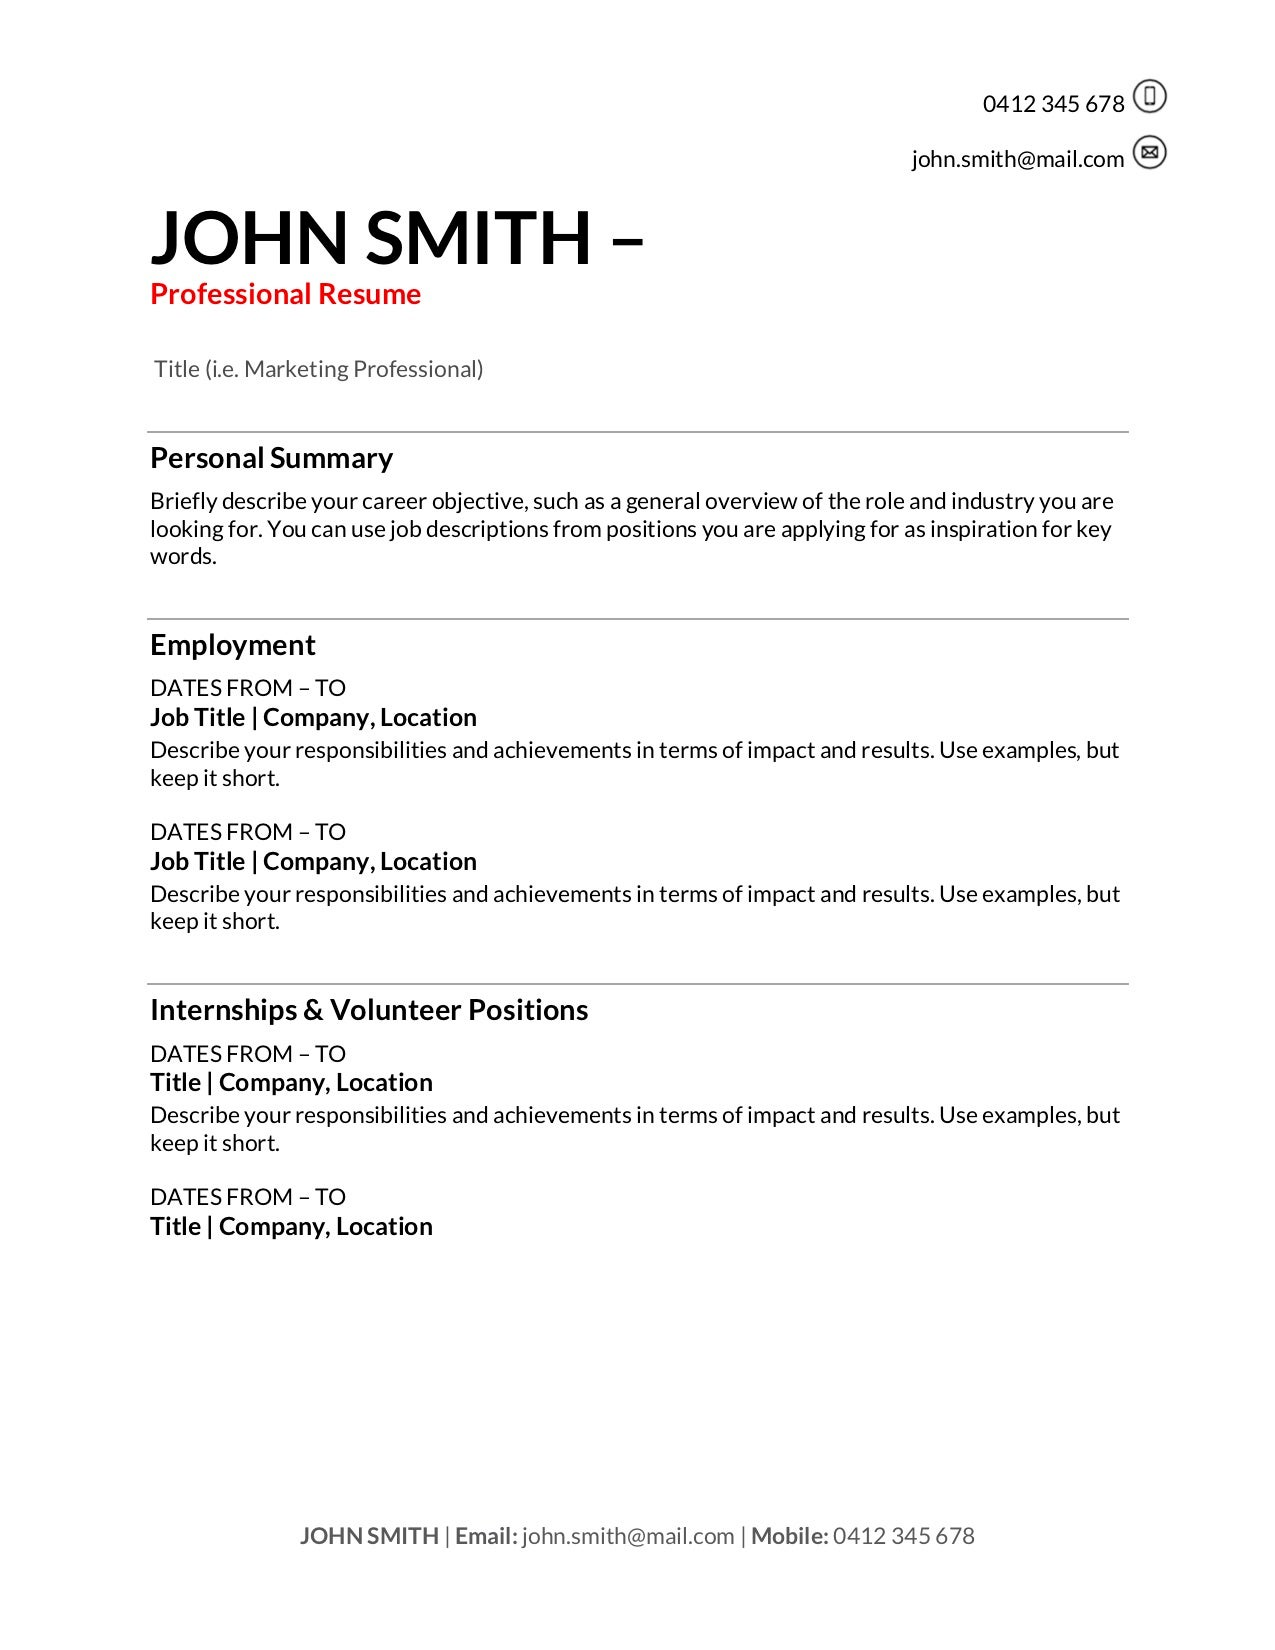 free resume templates to write in training au strong examples wet chemistry entry level Resume Strong Resume Examples 2020